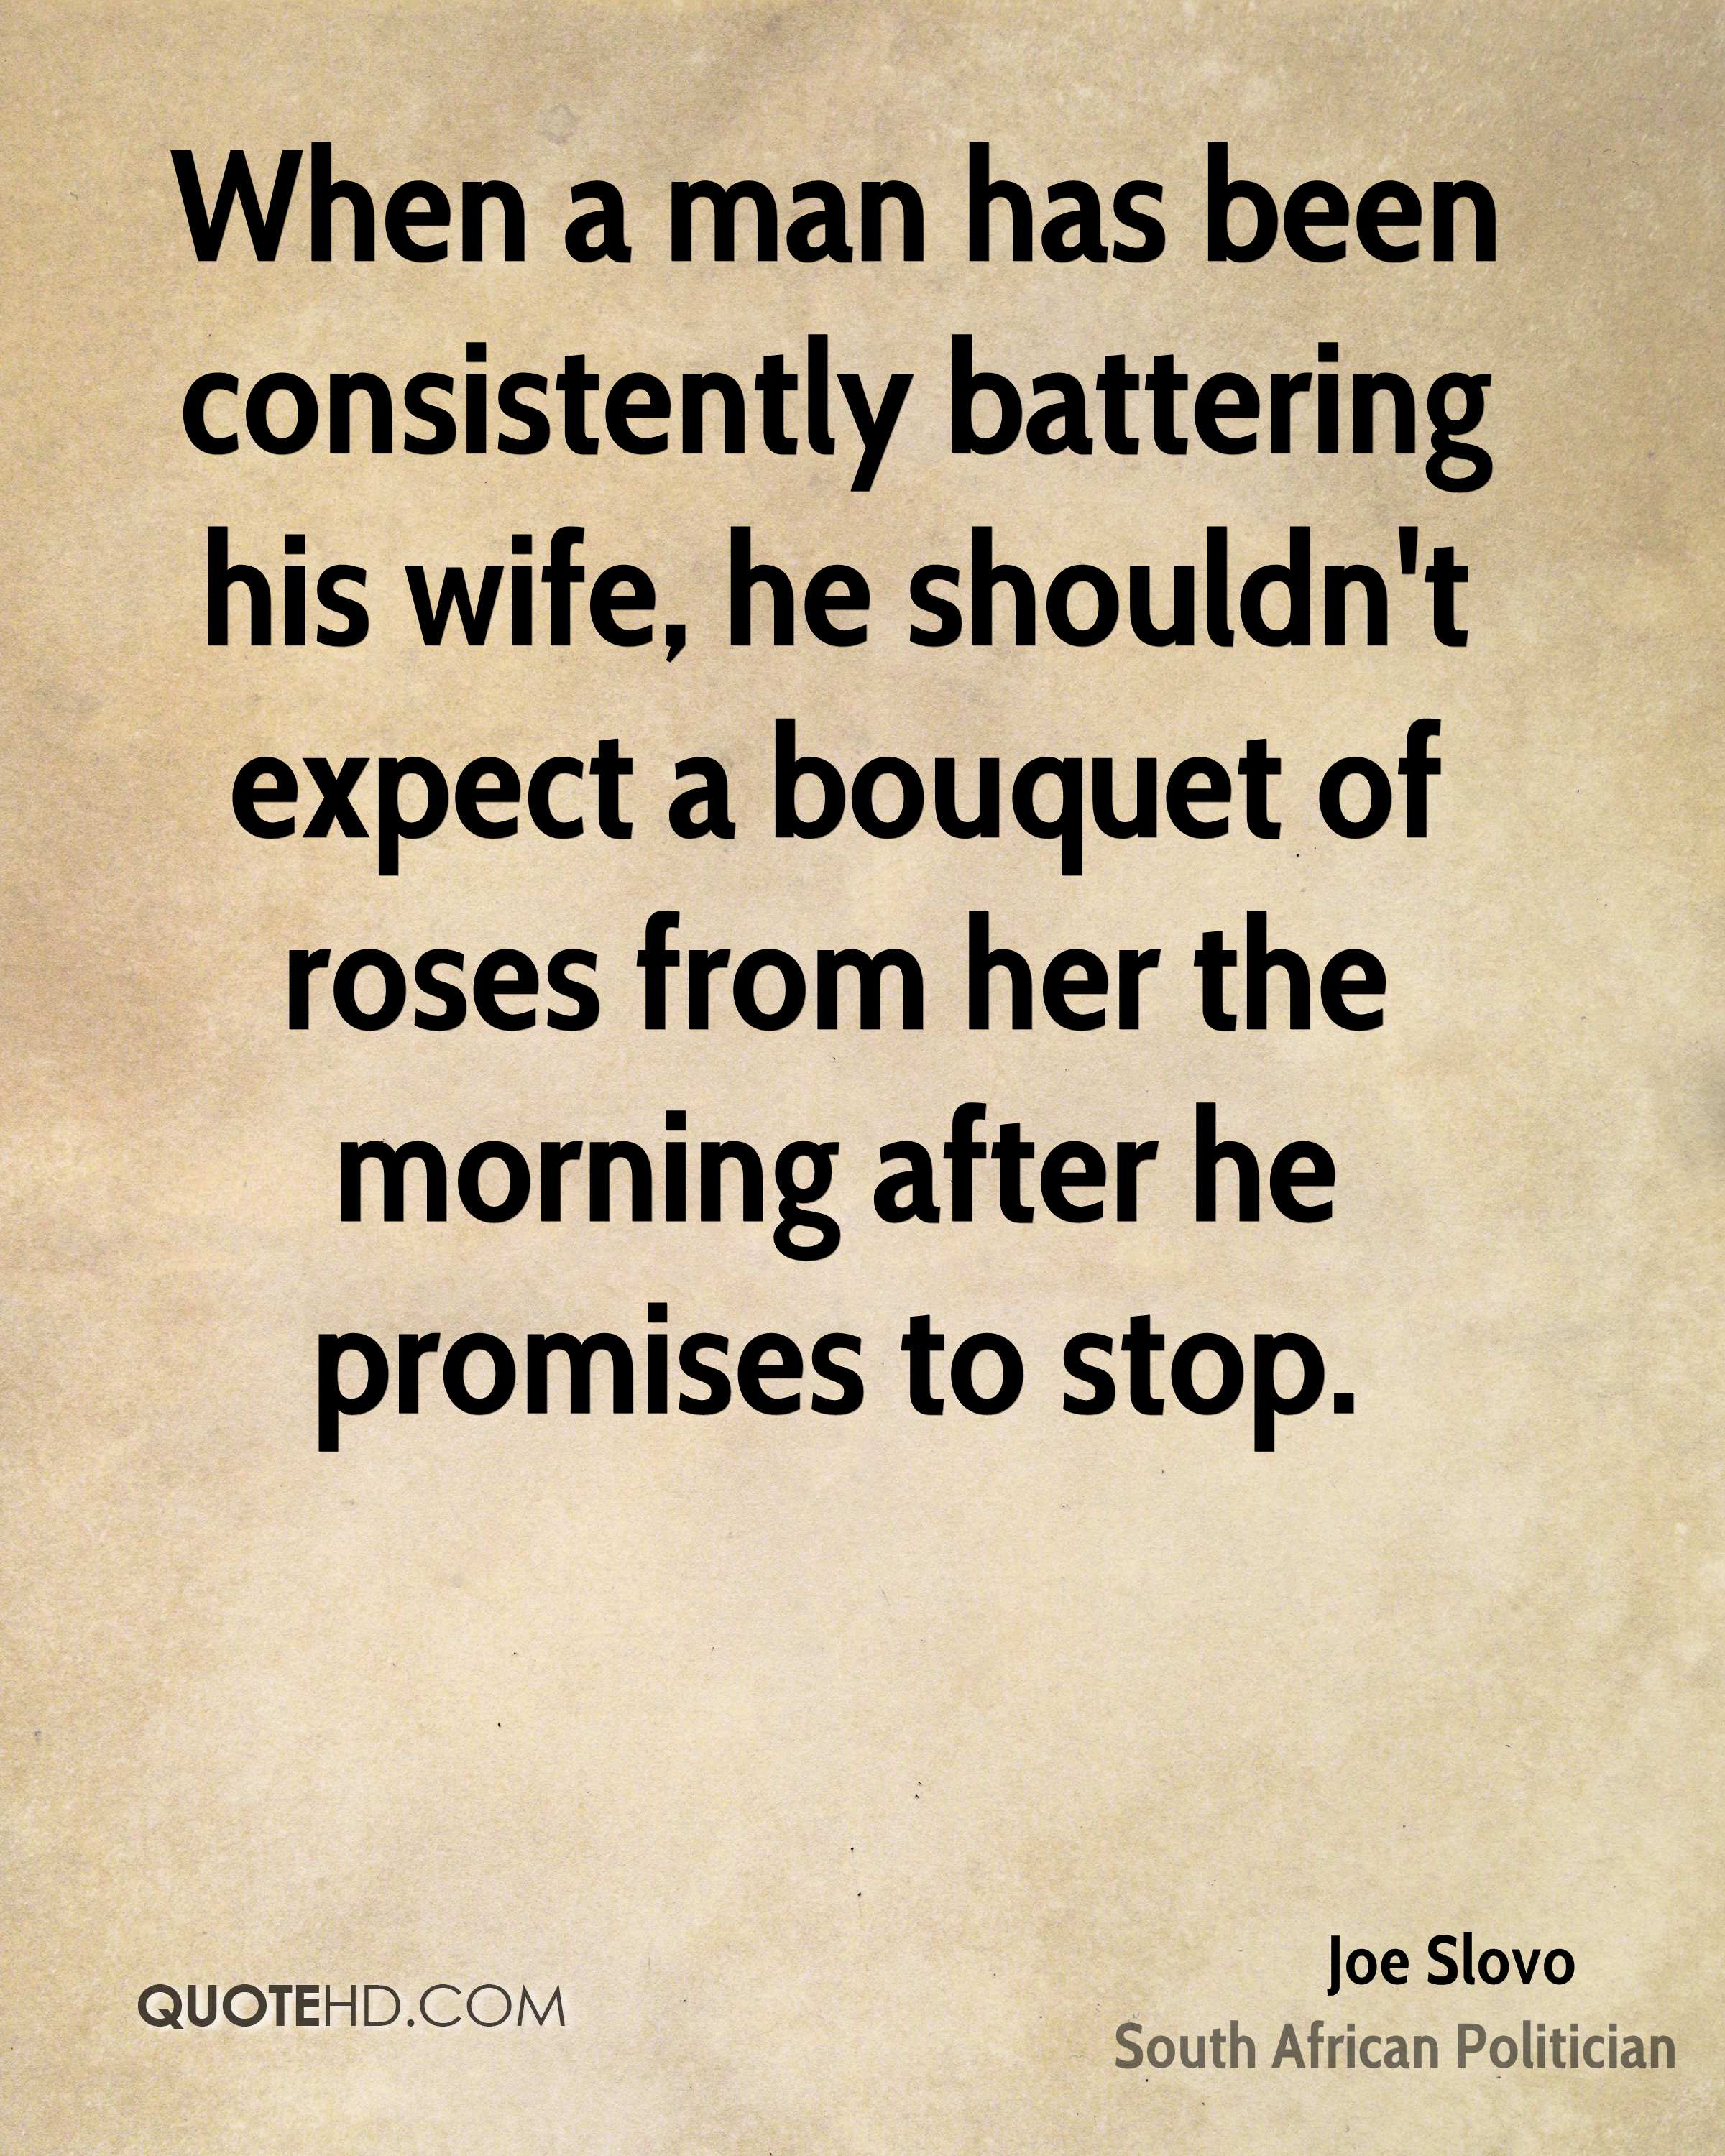 When a man has been consistently battering his wife, he shouldn't expect a bouquet of roses from her the morning after he promises to stop.